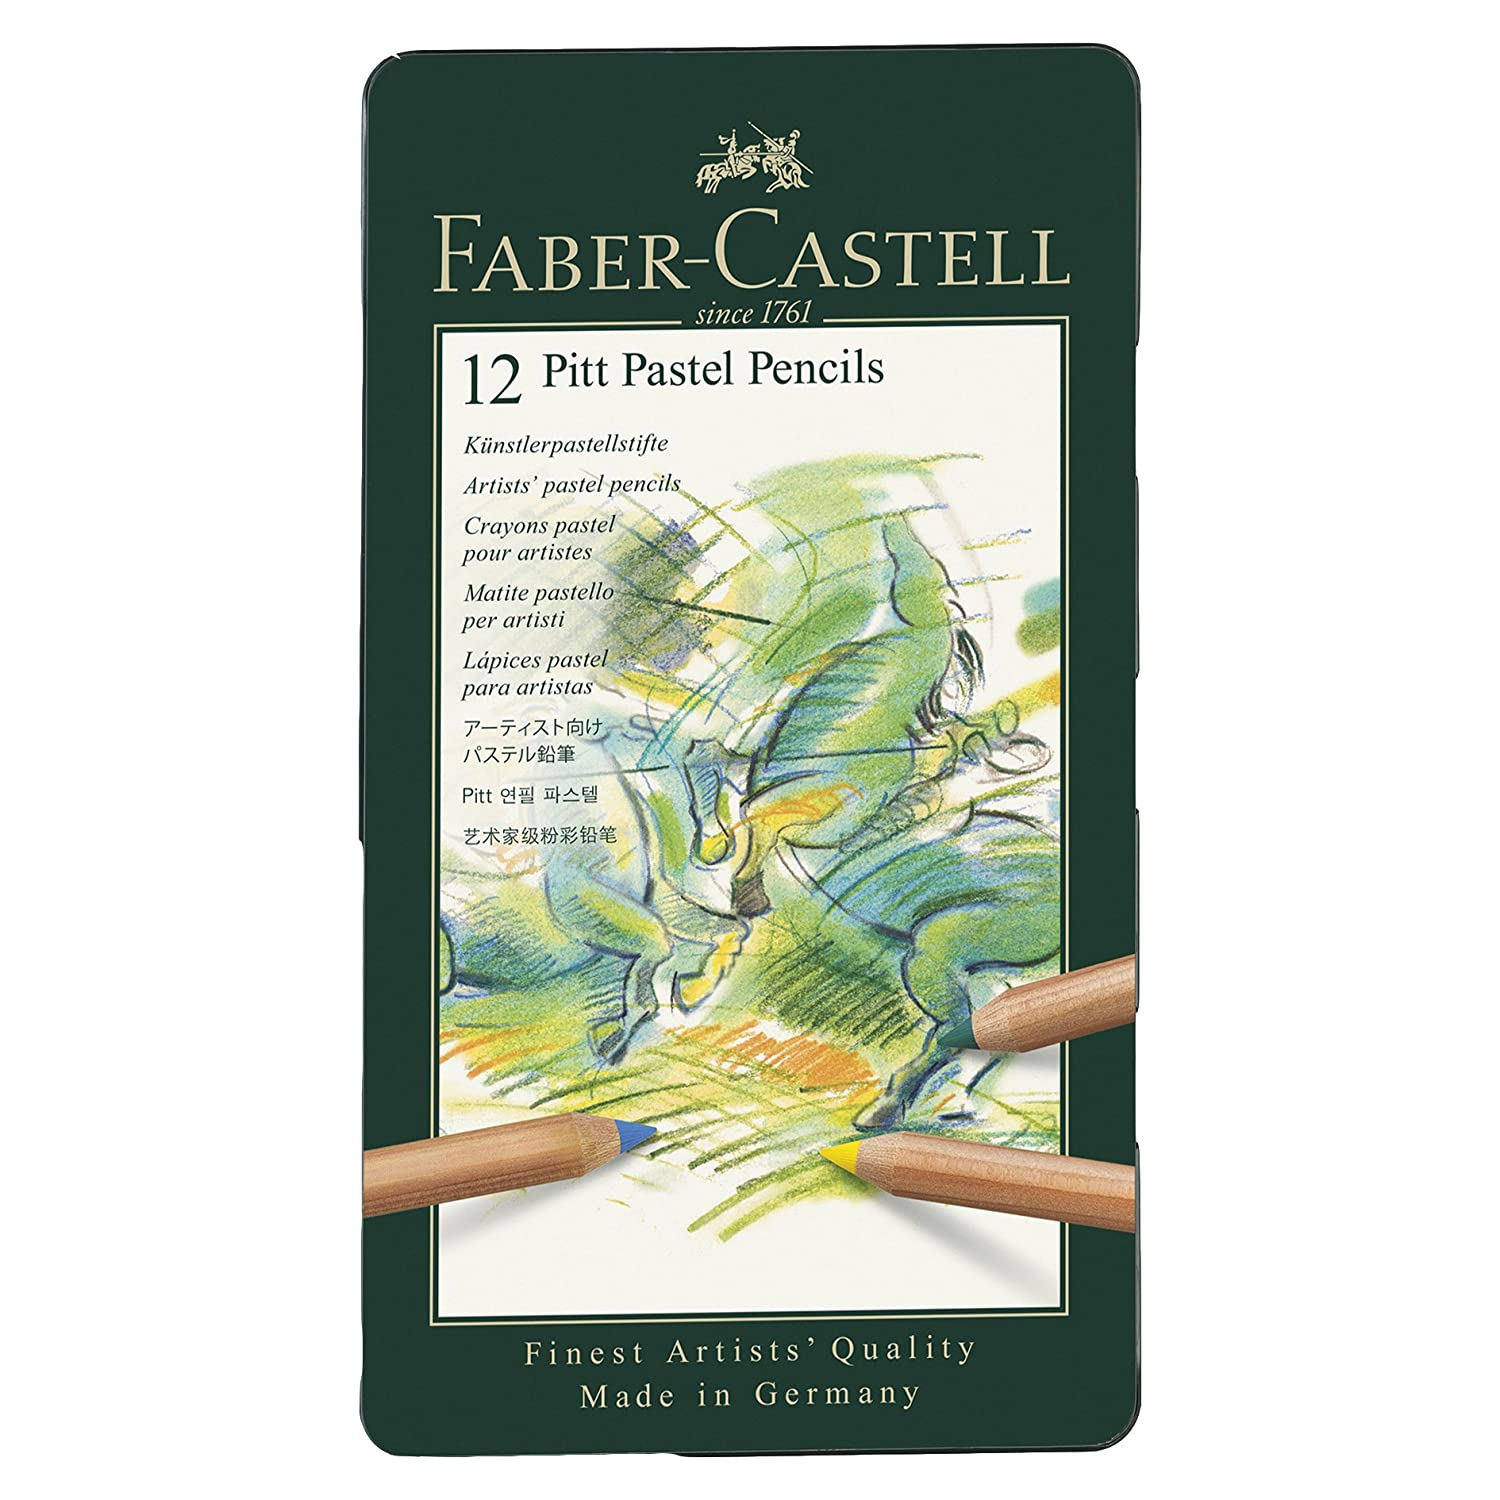 Faber-Castel FC112112 PITT Pastel Pencils In A Metal Tin (12 Pack), Assorted Notions - In Network reikos_0019522742AM_0006326